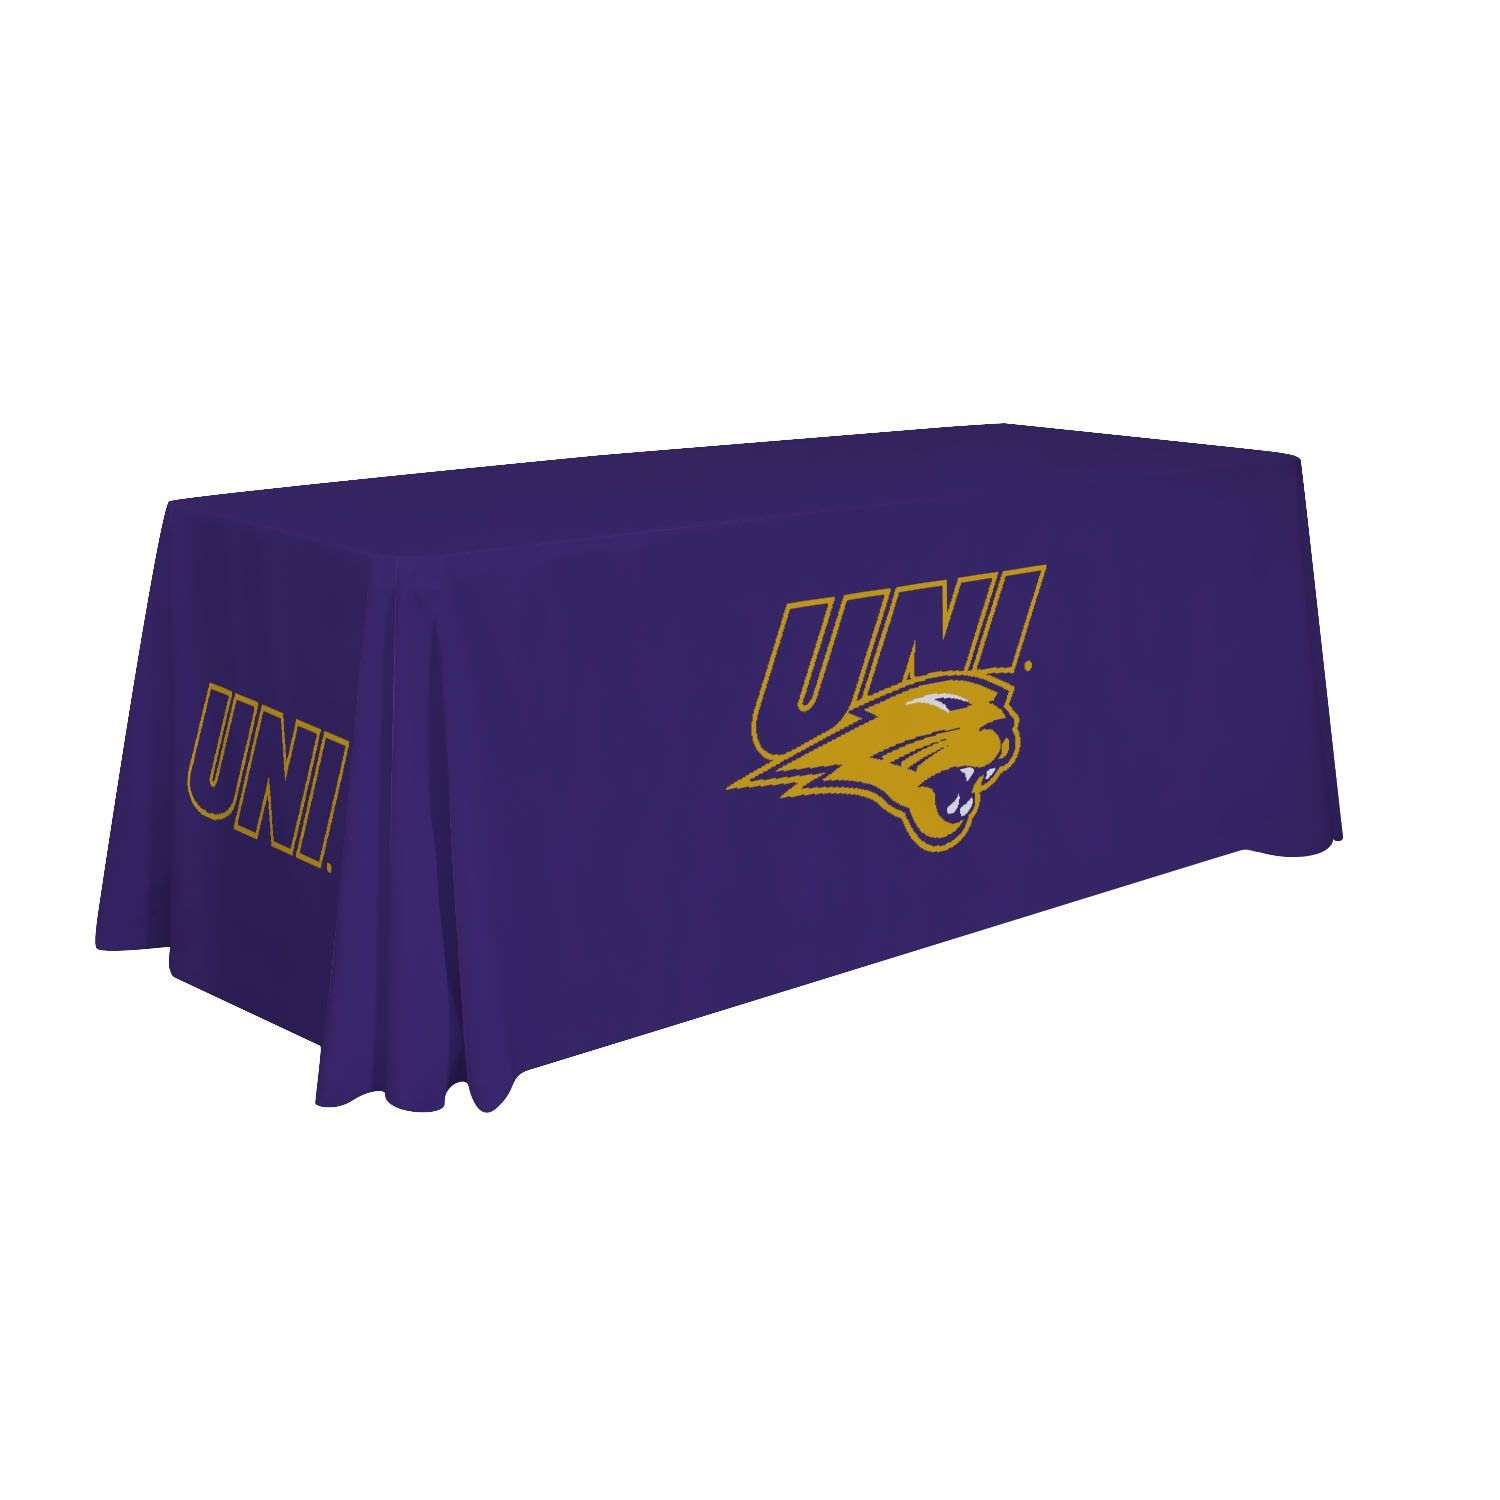 6' Table Cloth - Northern Iowa University Panthers - 810026NIA-002